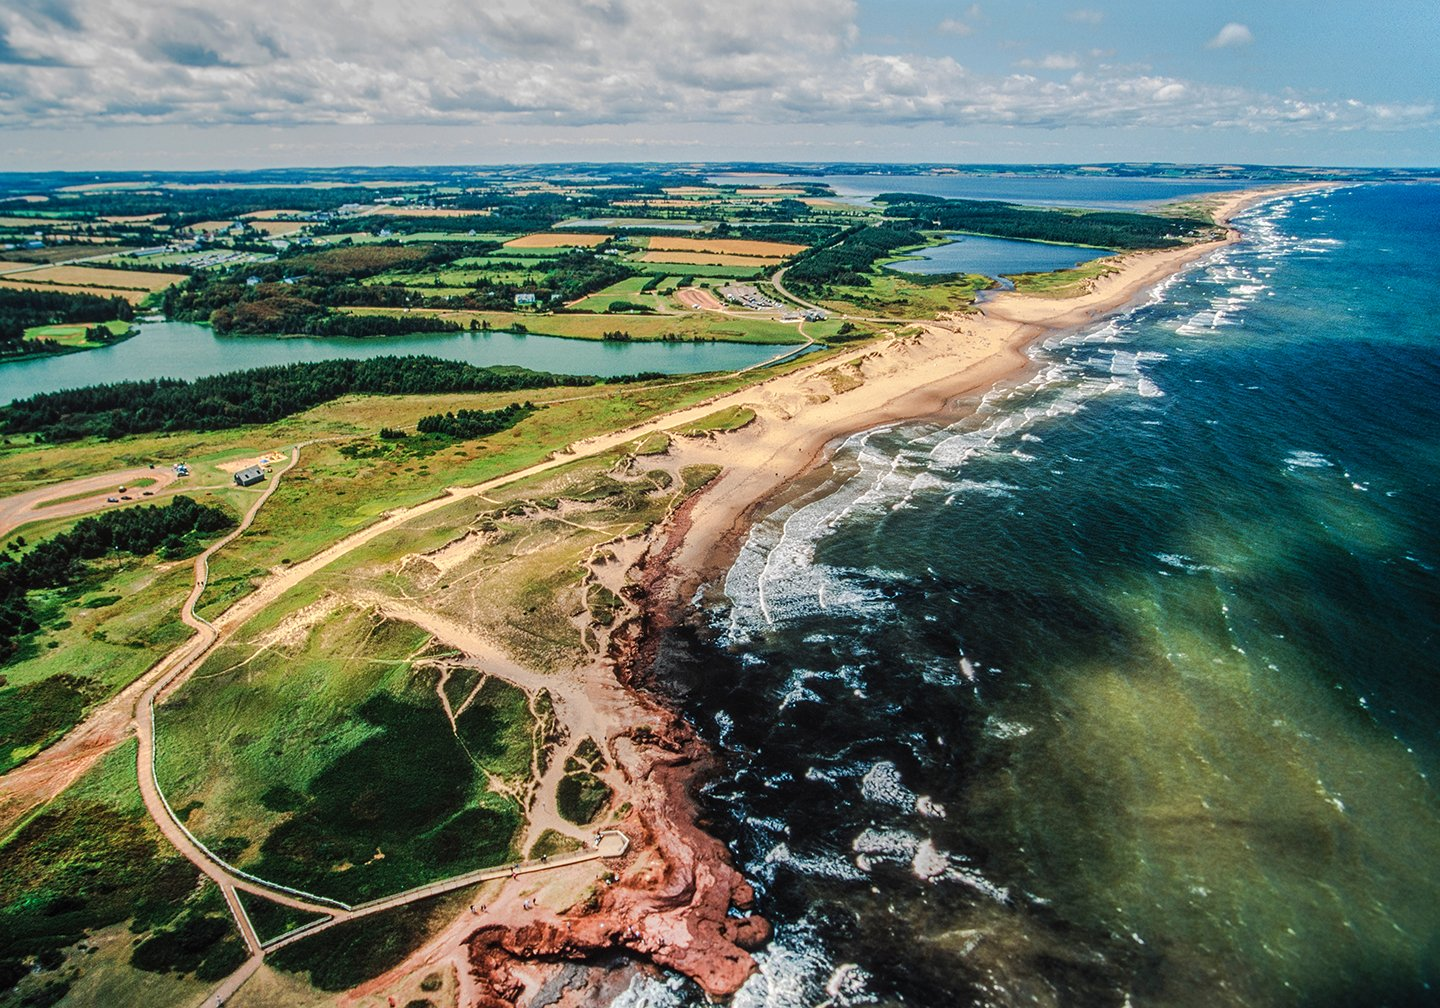 An aerial view of Prince Edward Island in Canada, with green fields on the left, yellow beach in the middle, and dark green water on the right.